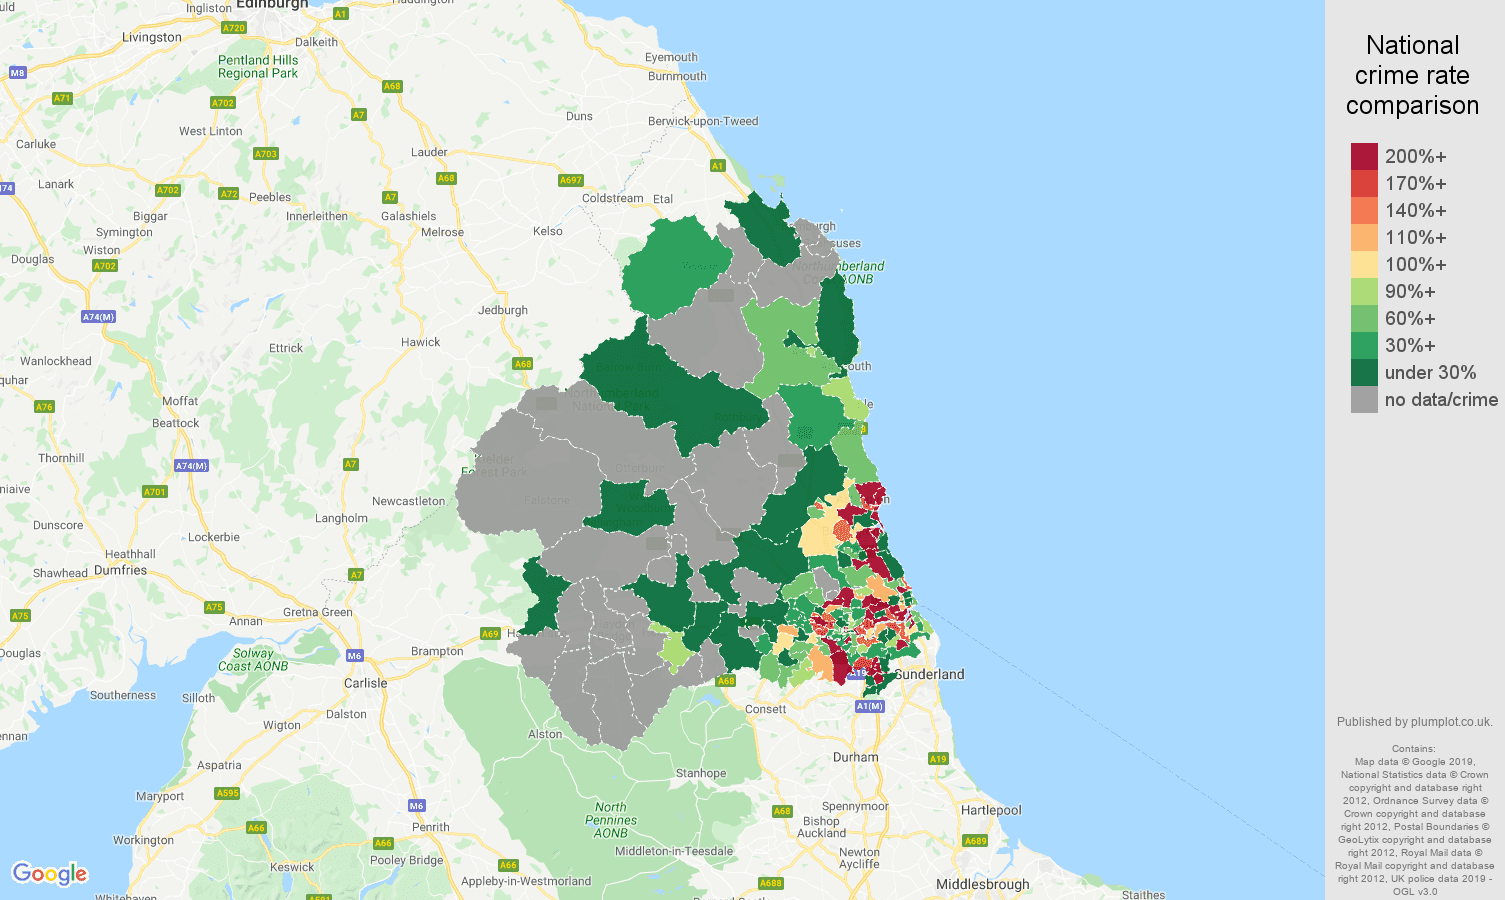 Newcastle upon Tyne shoplifting crime rate comparison map